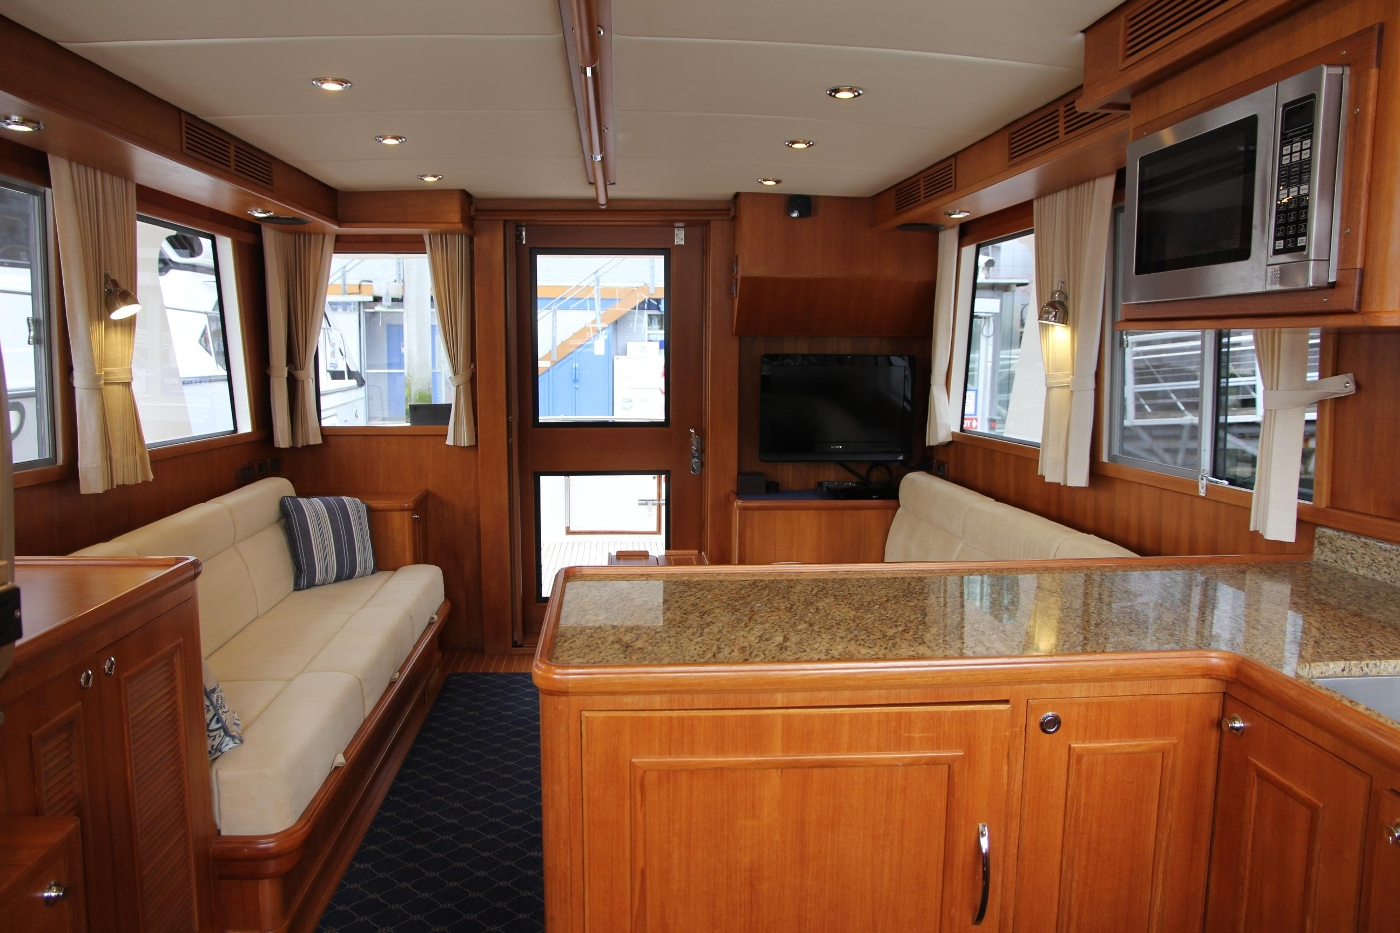 2009 Grand Banks 47 Europa, Salon from Galley